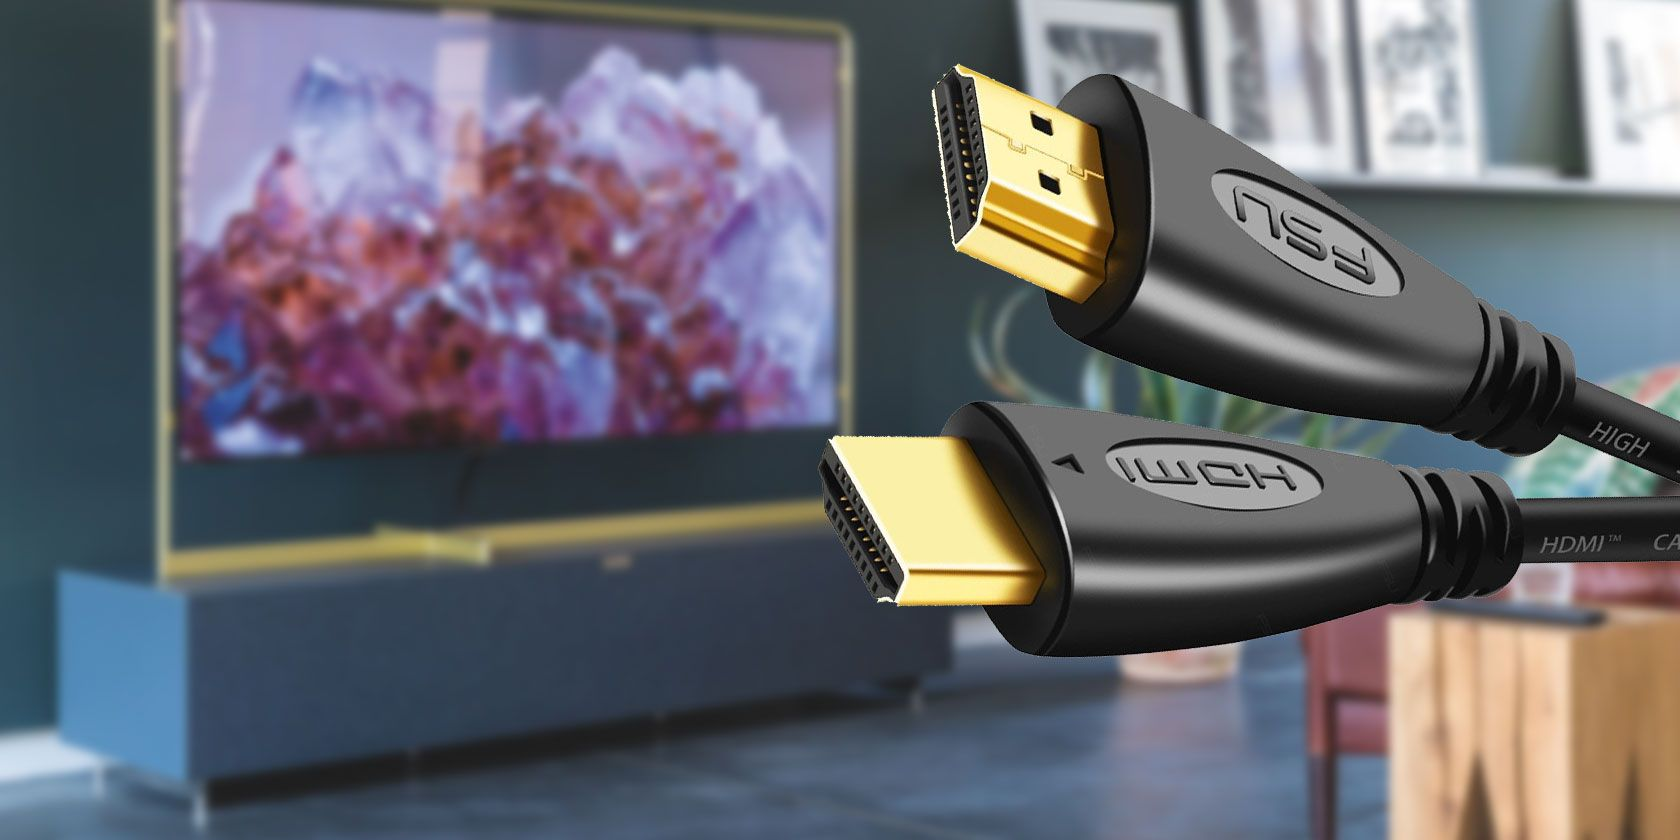 Do Gold HDMI Cables Produce Better Picture Quality?